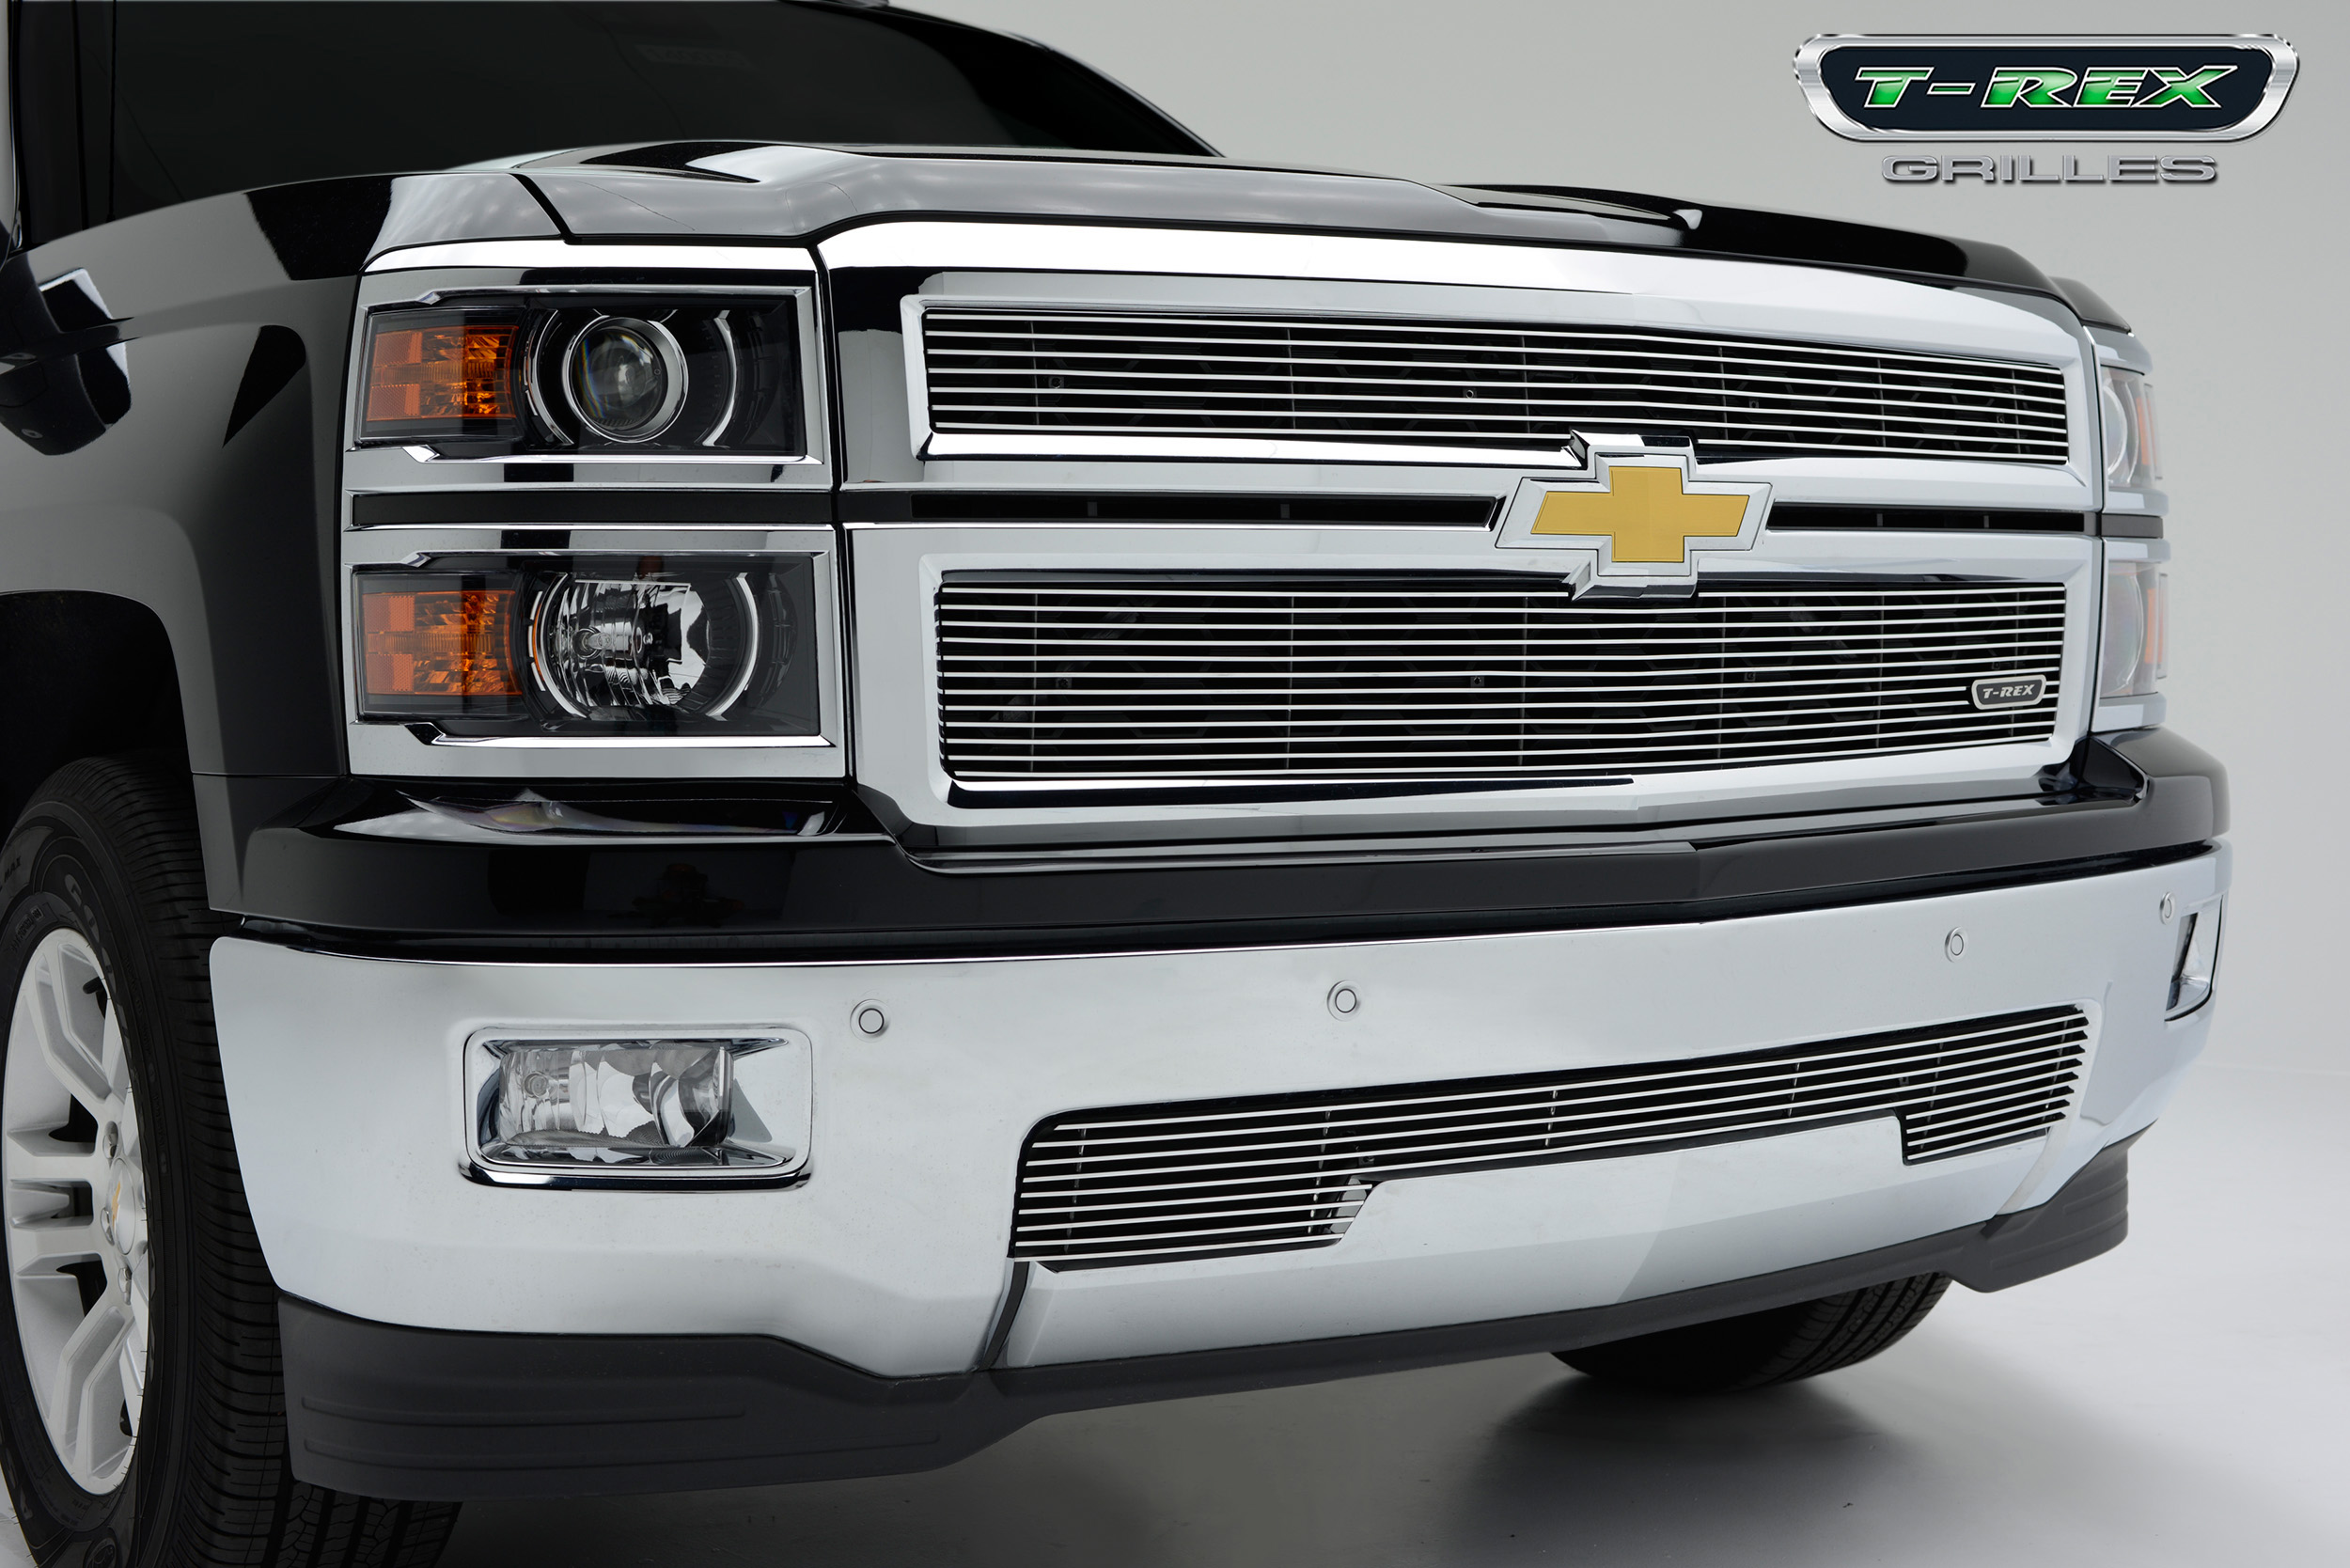 T-Rex 2014 Chevy Silverado 1500 Billet Grille - Polished